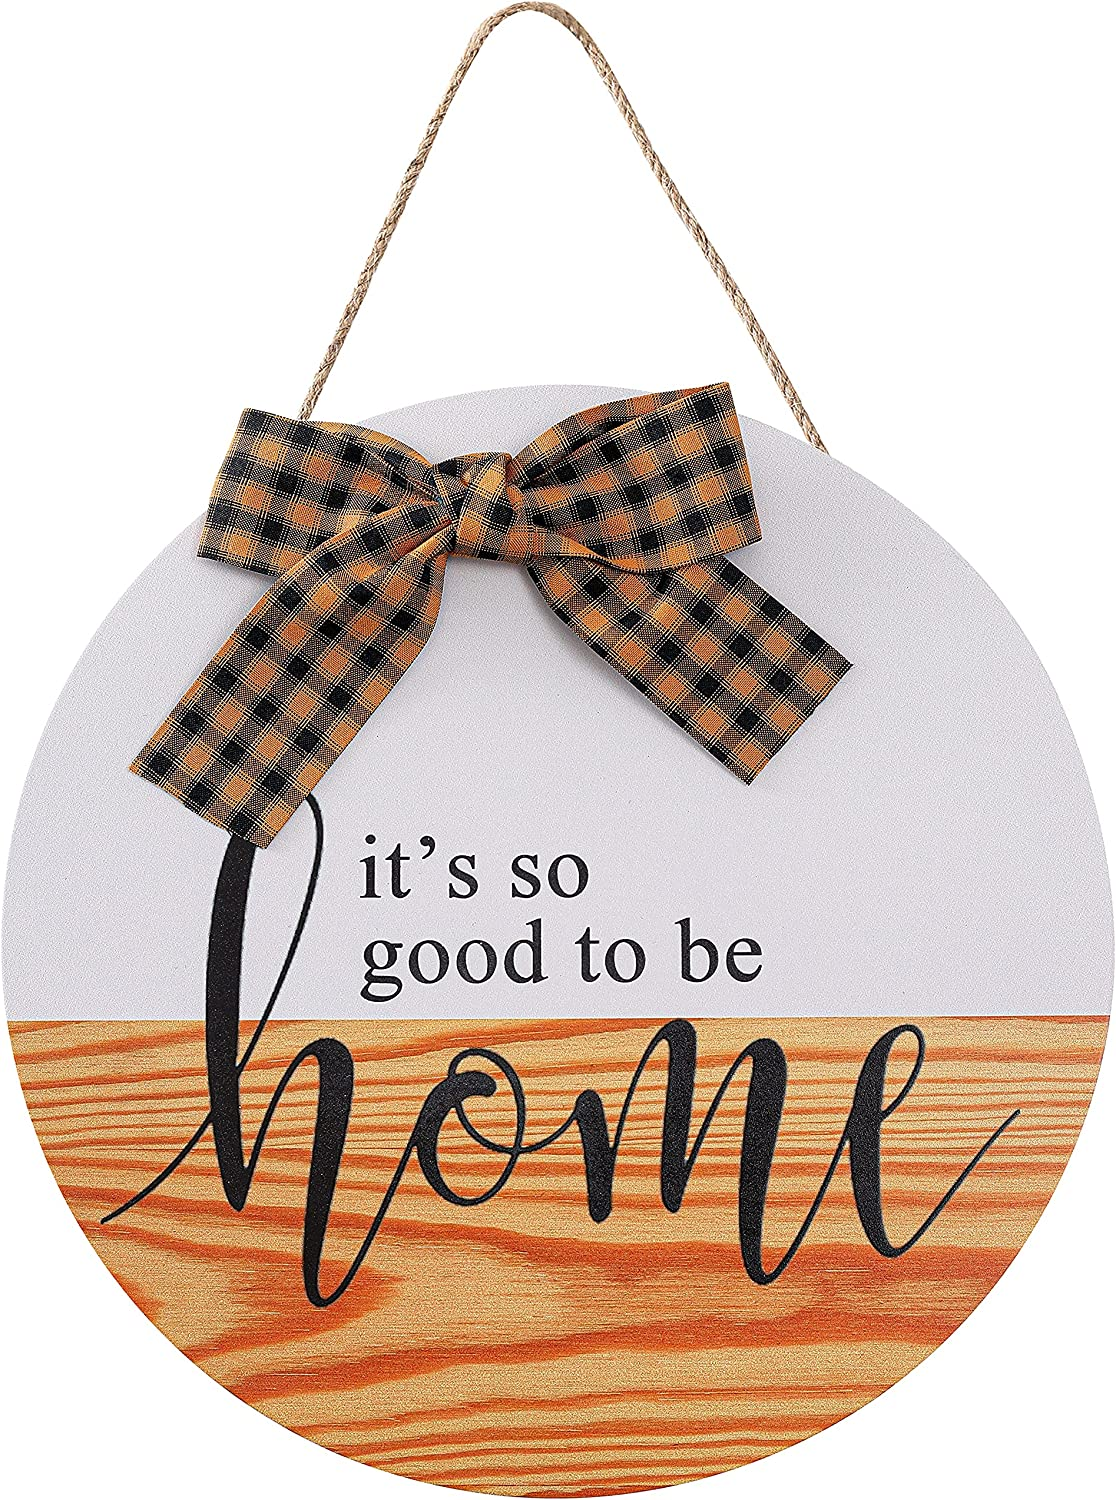 CYNOSA Welcome Sign Porch for Front Door Decor, It's So Good to Be Home Rustic Wooden Door Hangers Wreath Decoration Hanging Vertical Sign Farmhouse Outdoor Wall Decor (Yellow)